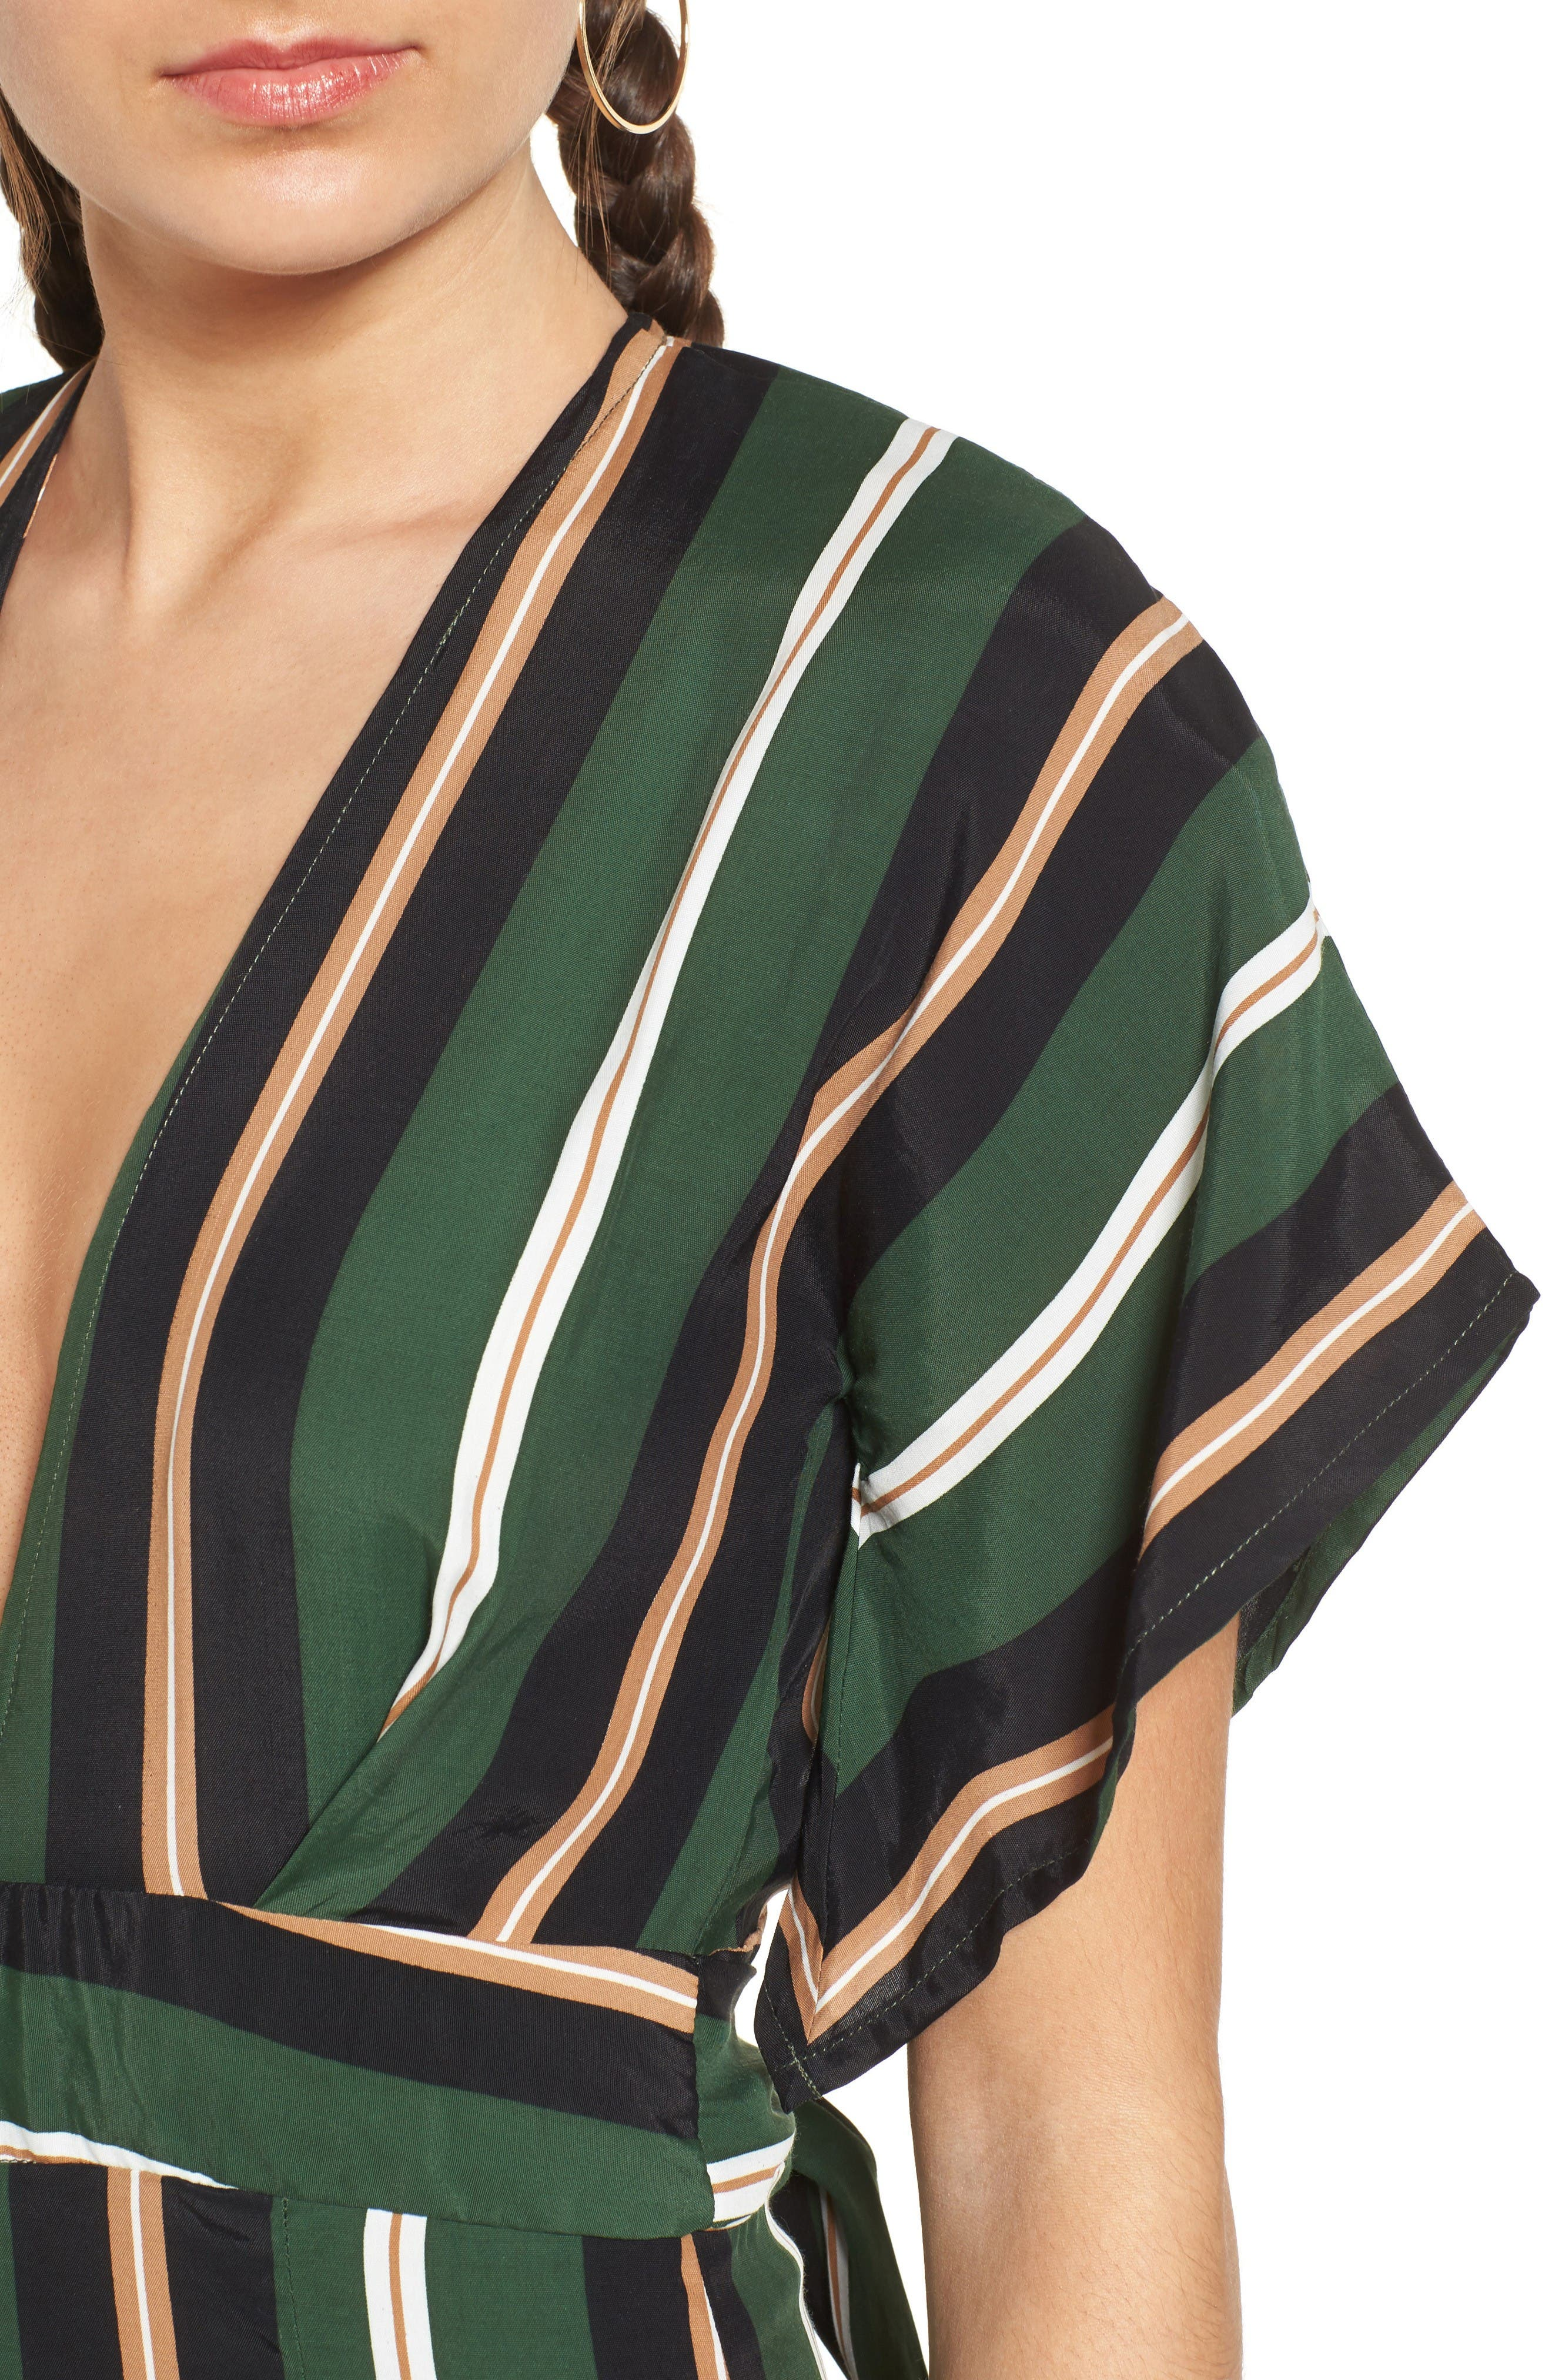 Cedric Jumpsuit,                             Alternate thumbnail 5, color,                             Firenze Stripes Green/Blk